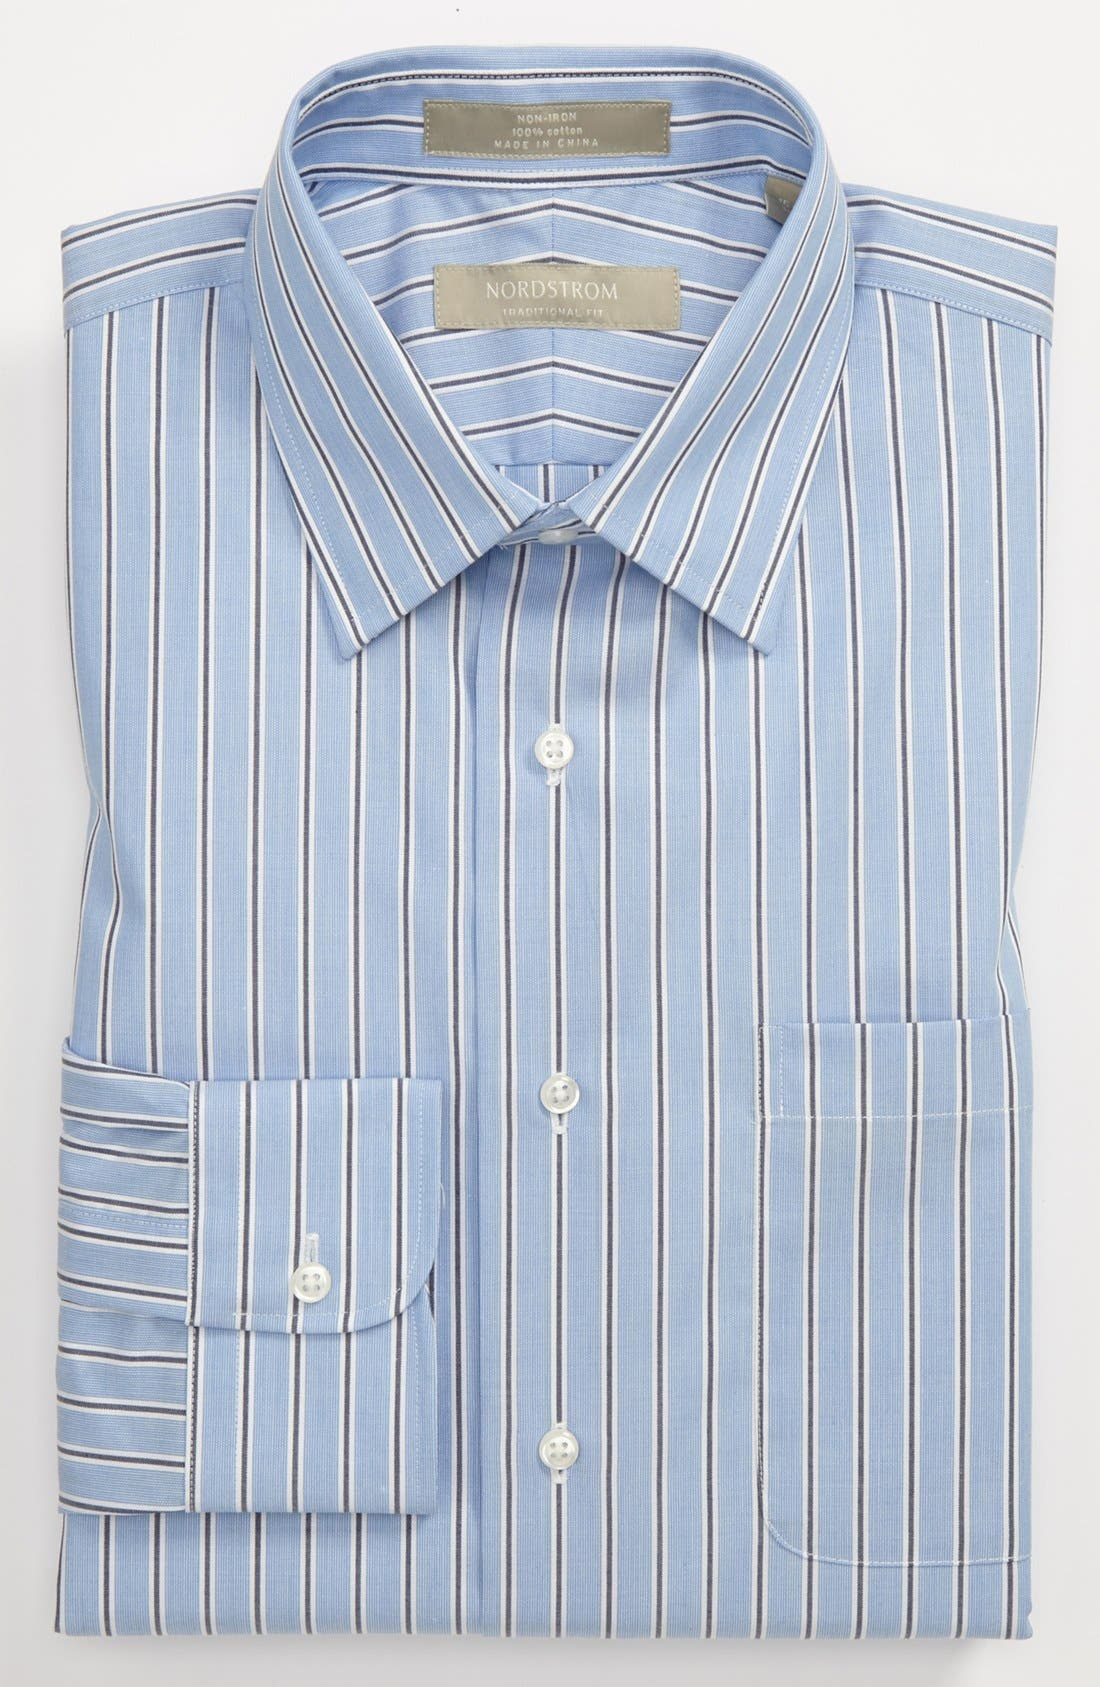 Main Image - Nordstrom Traditional Fit Non-Iron Dress Shirt